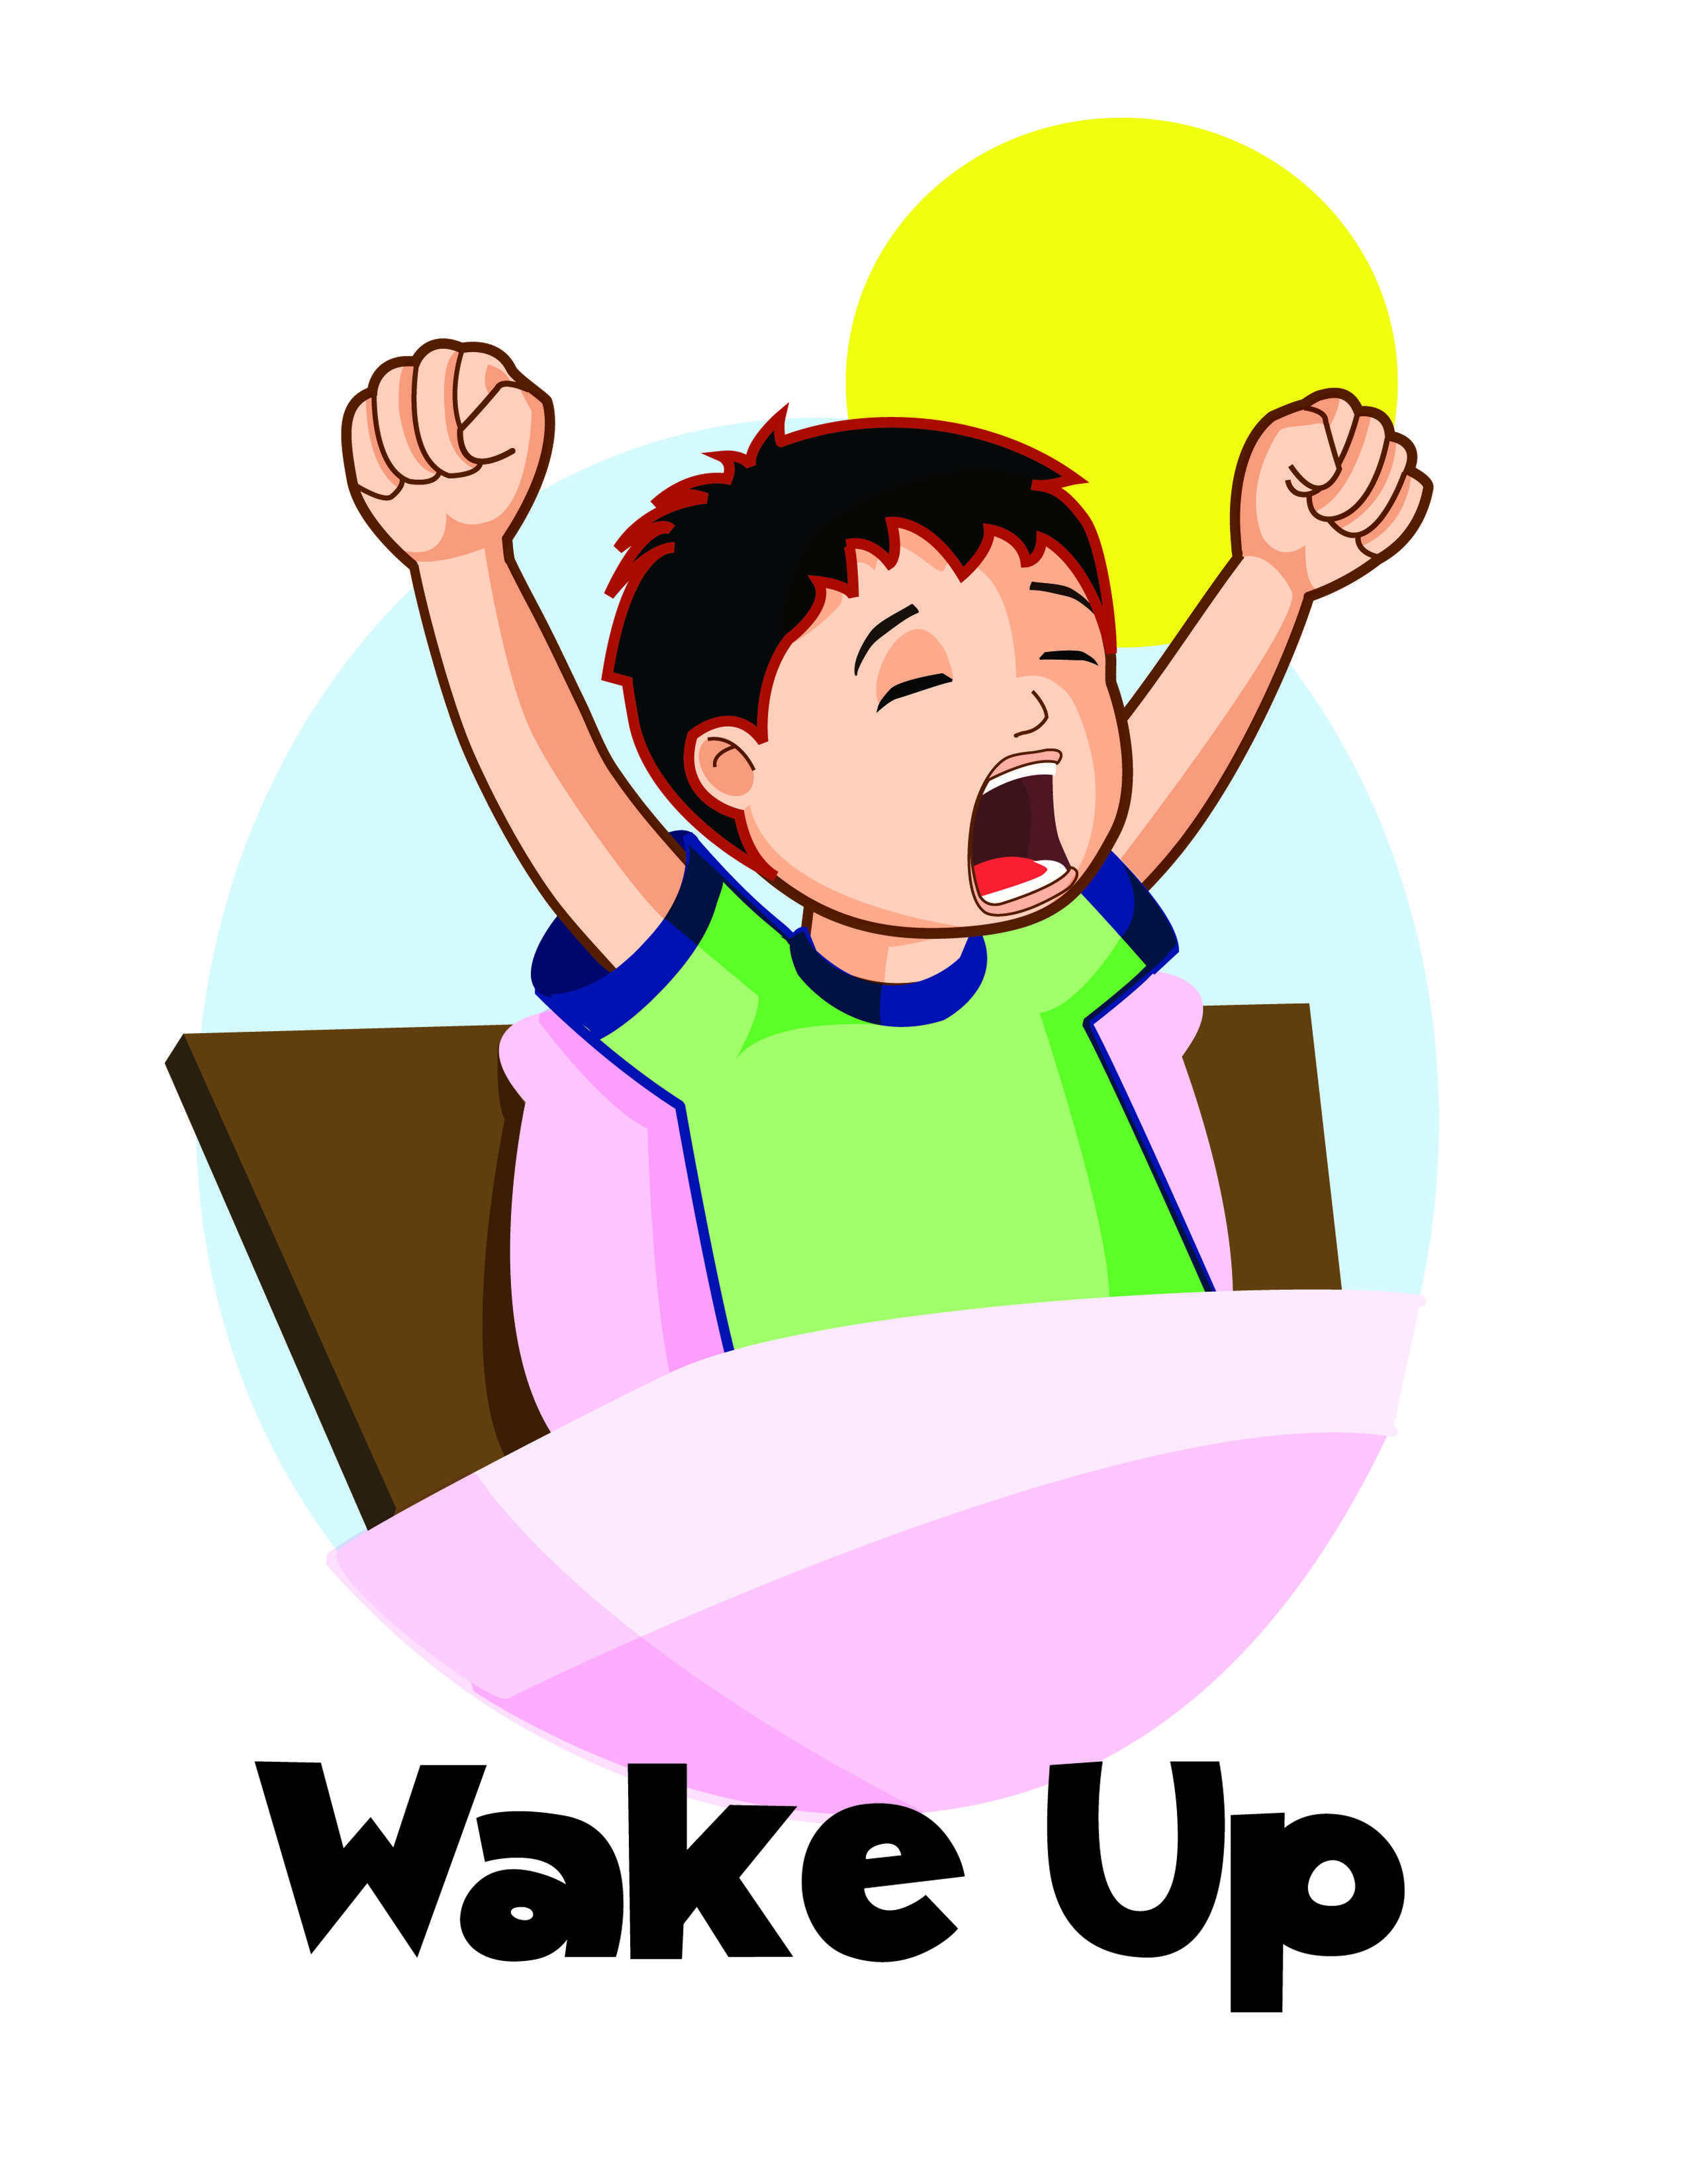 Morning clipart early to rise. Get up in the